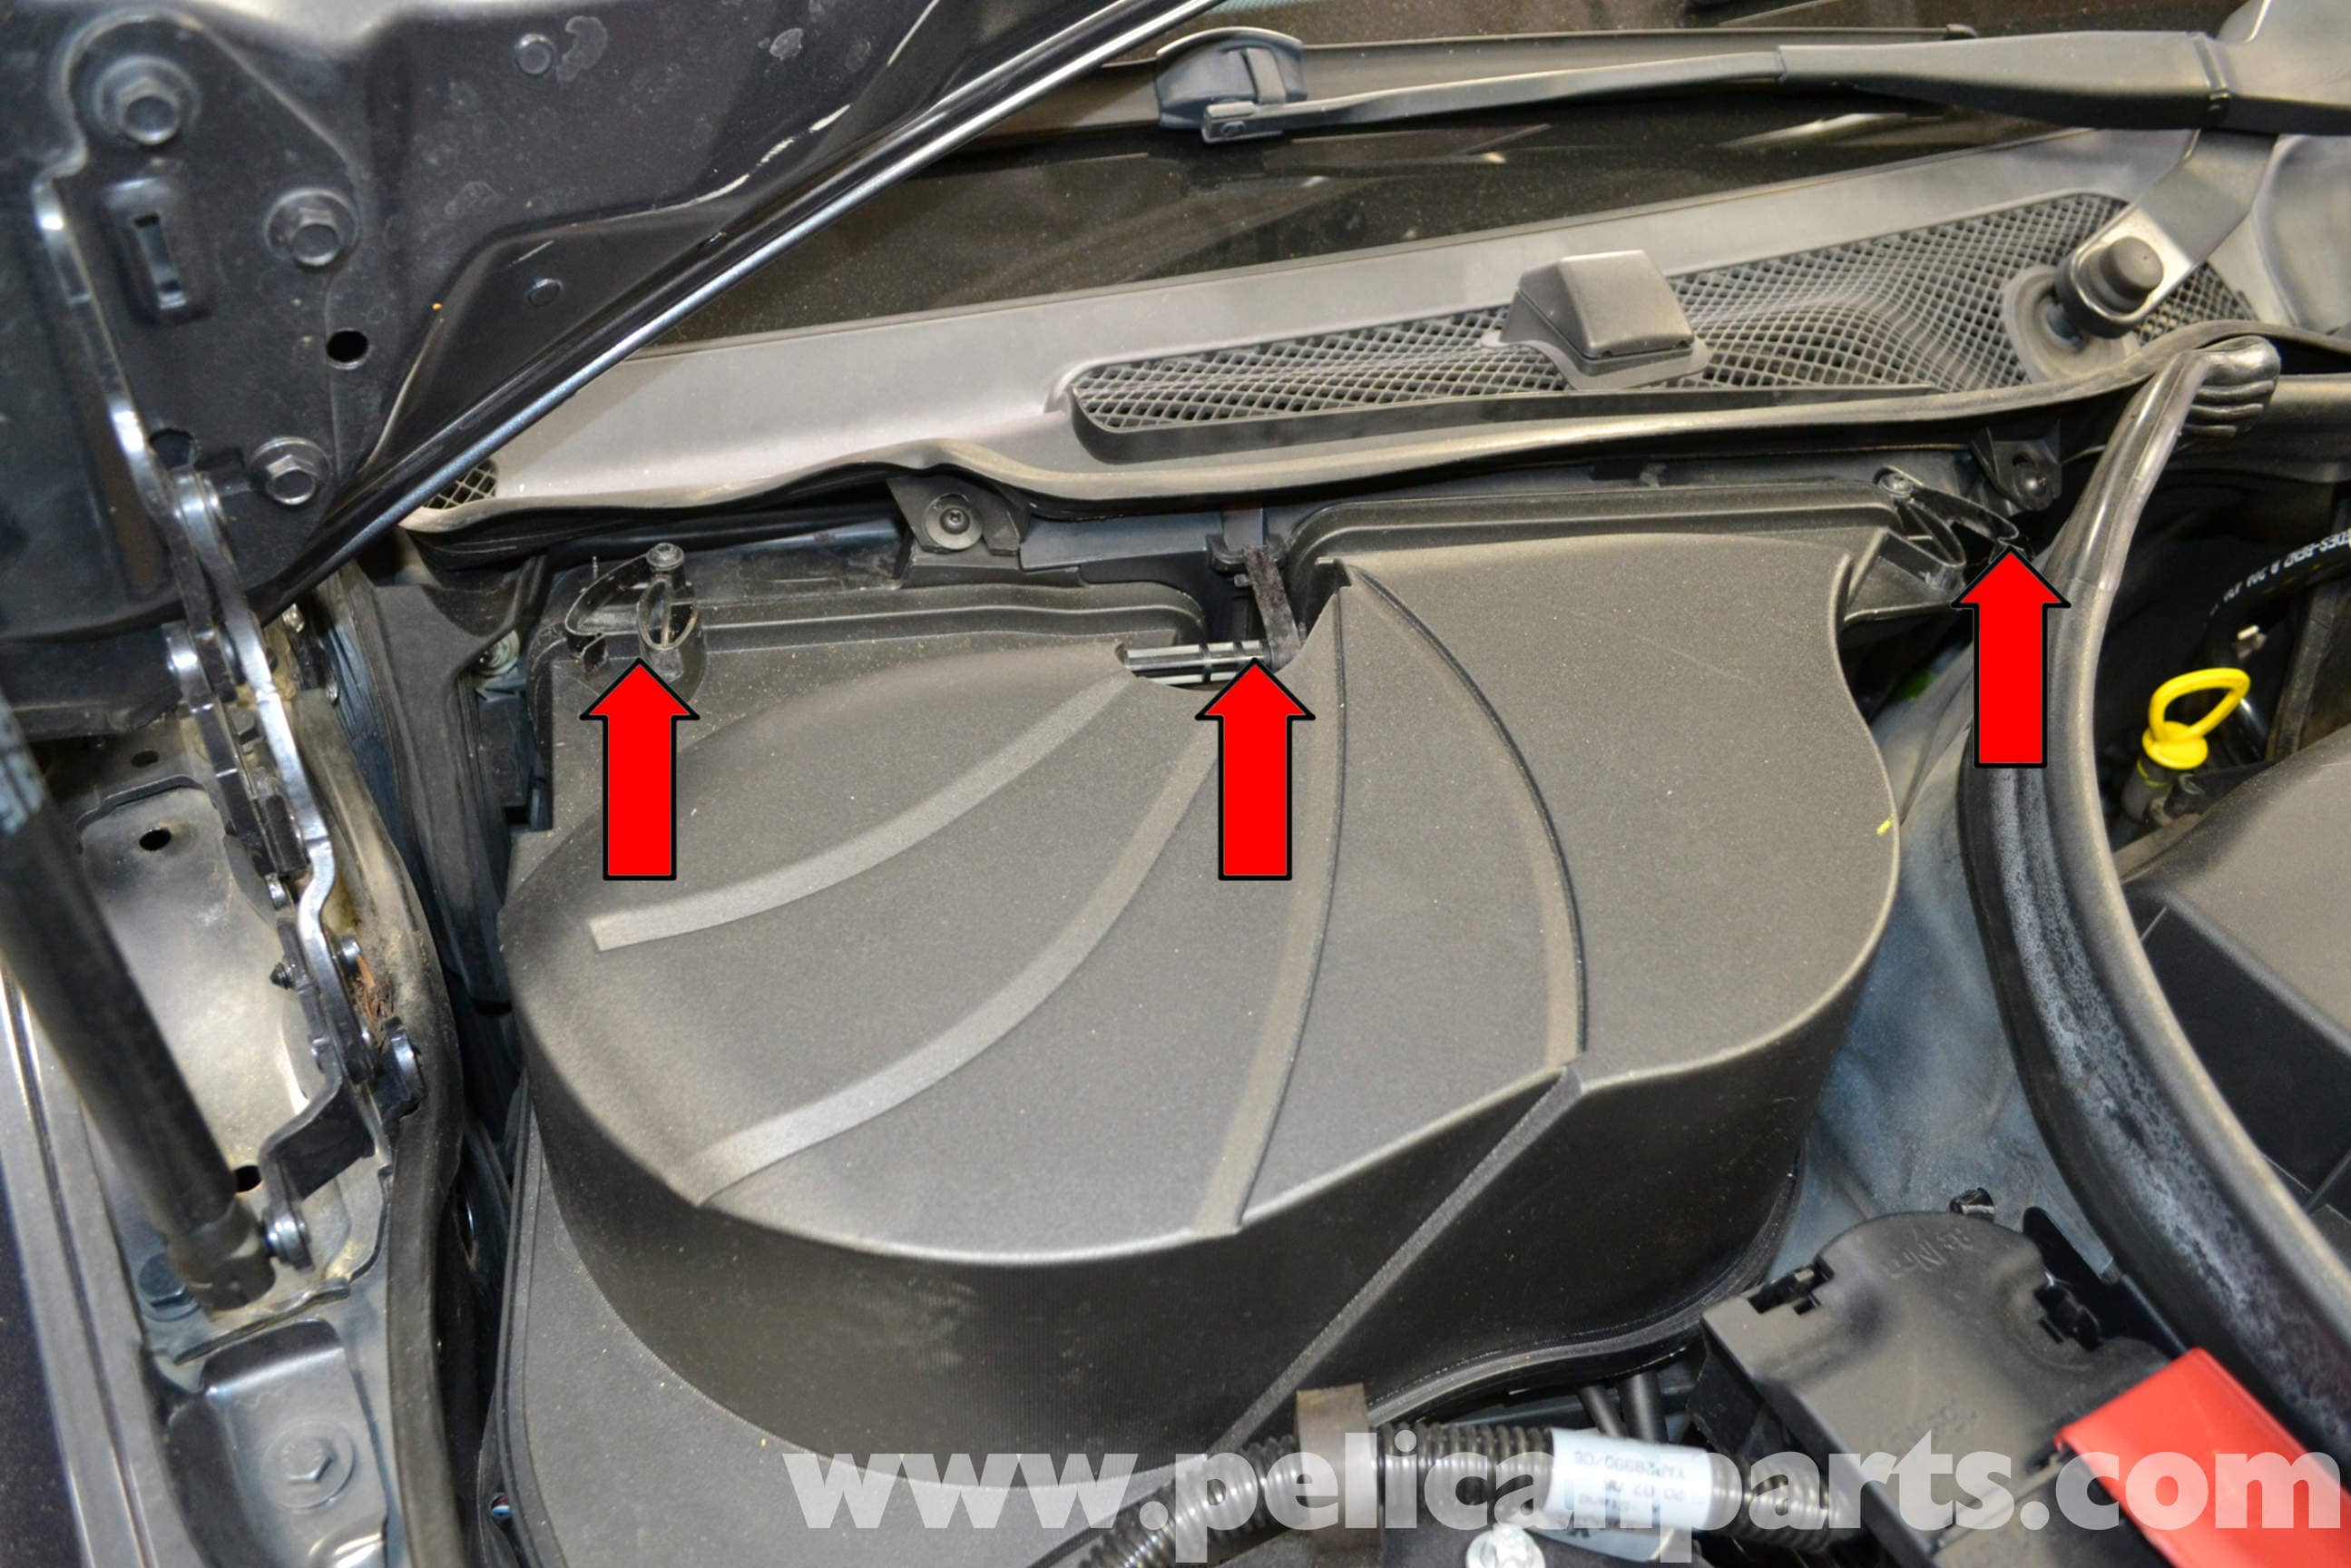 Mercedes Replacement Parts >> Mercedes-Benz W204 Battery Connection Notes and Replacement | W204 (2008-2015) | Pelican Parts ...